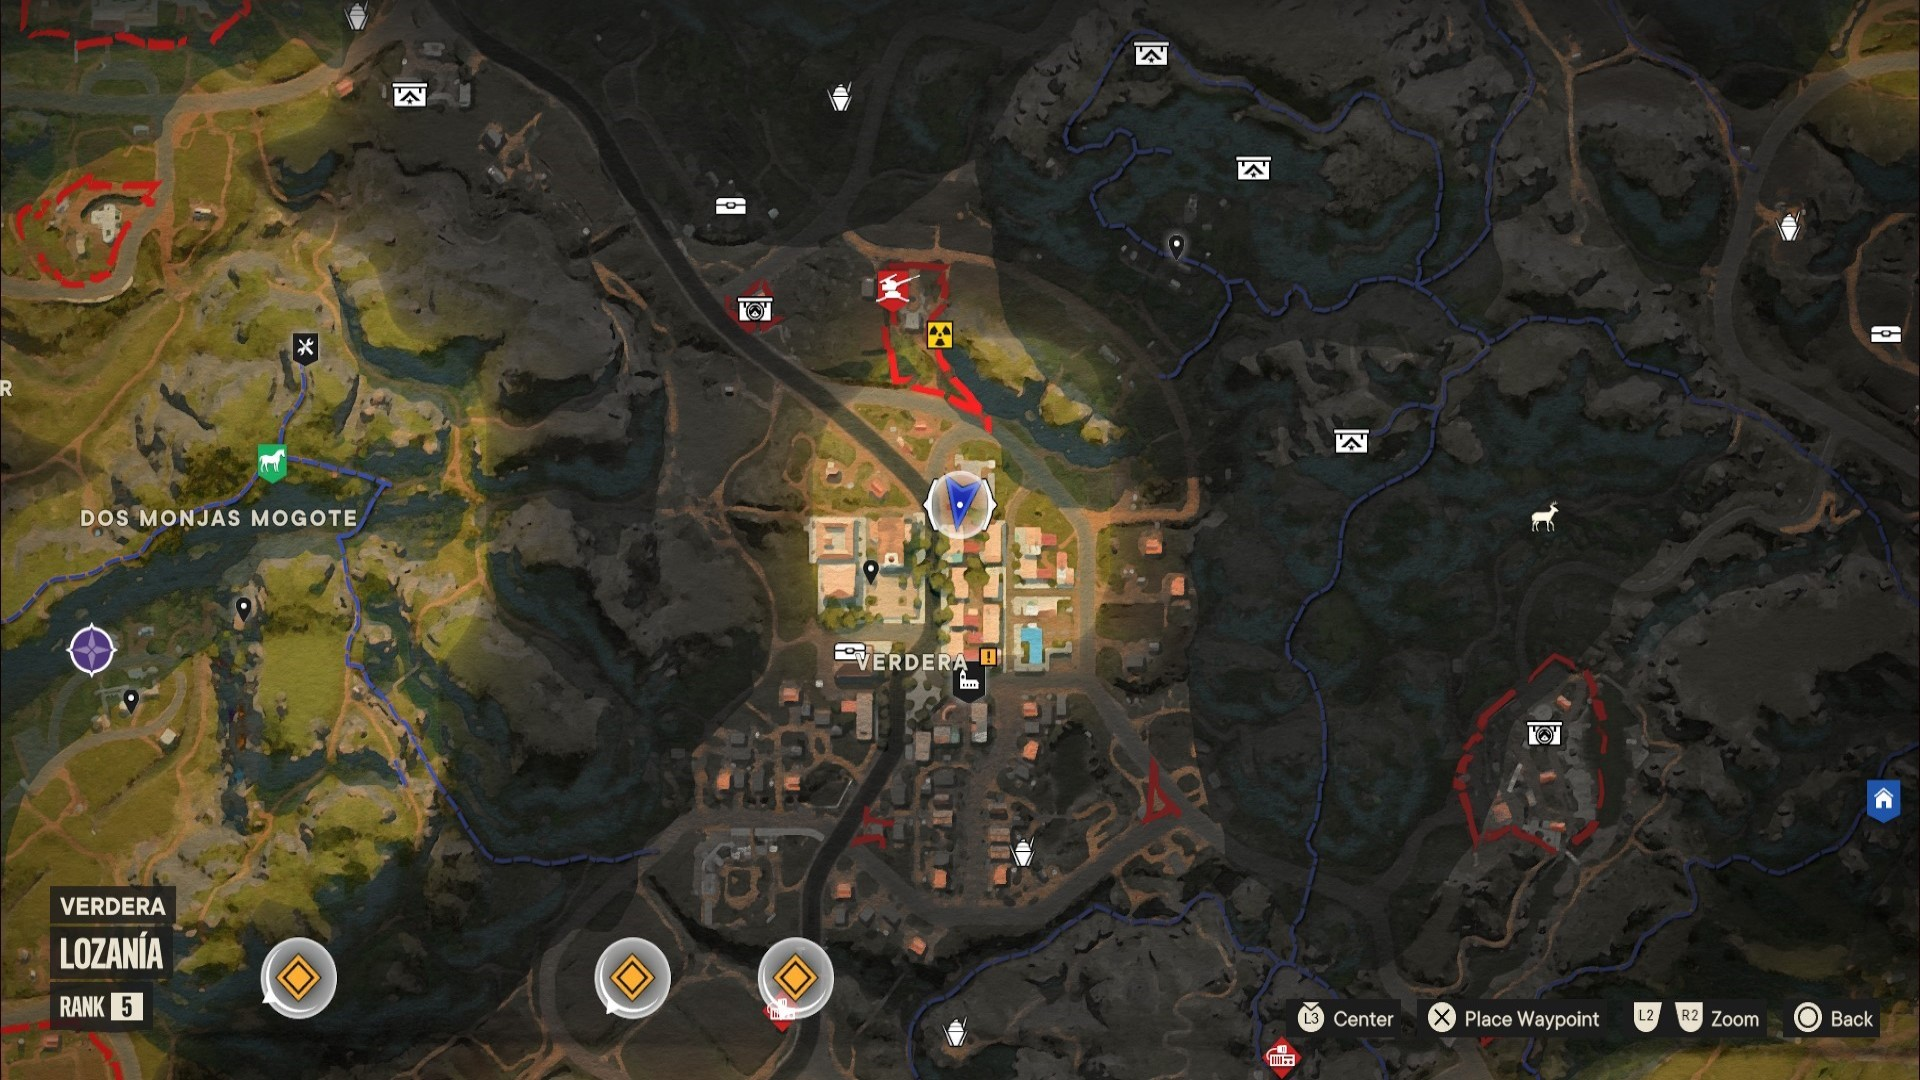 A Far Cry 6 Criptograma chest location marked on a map of Madrugada.